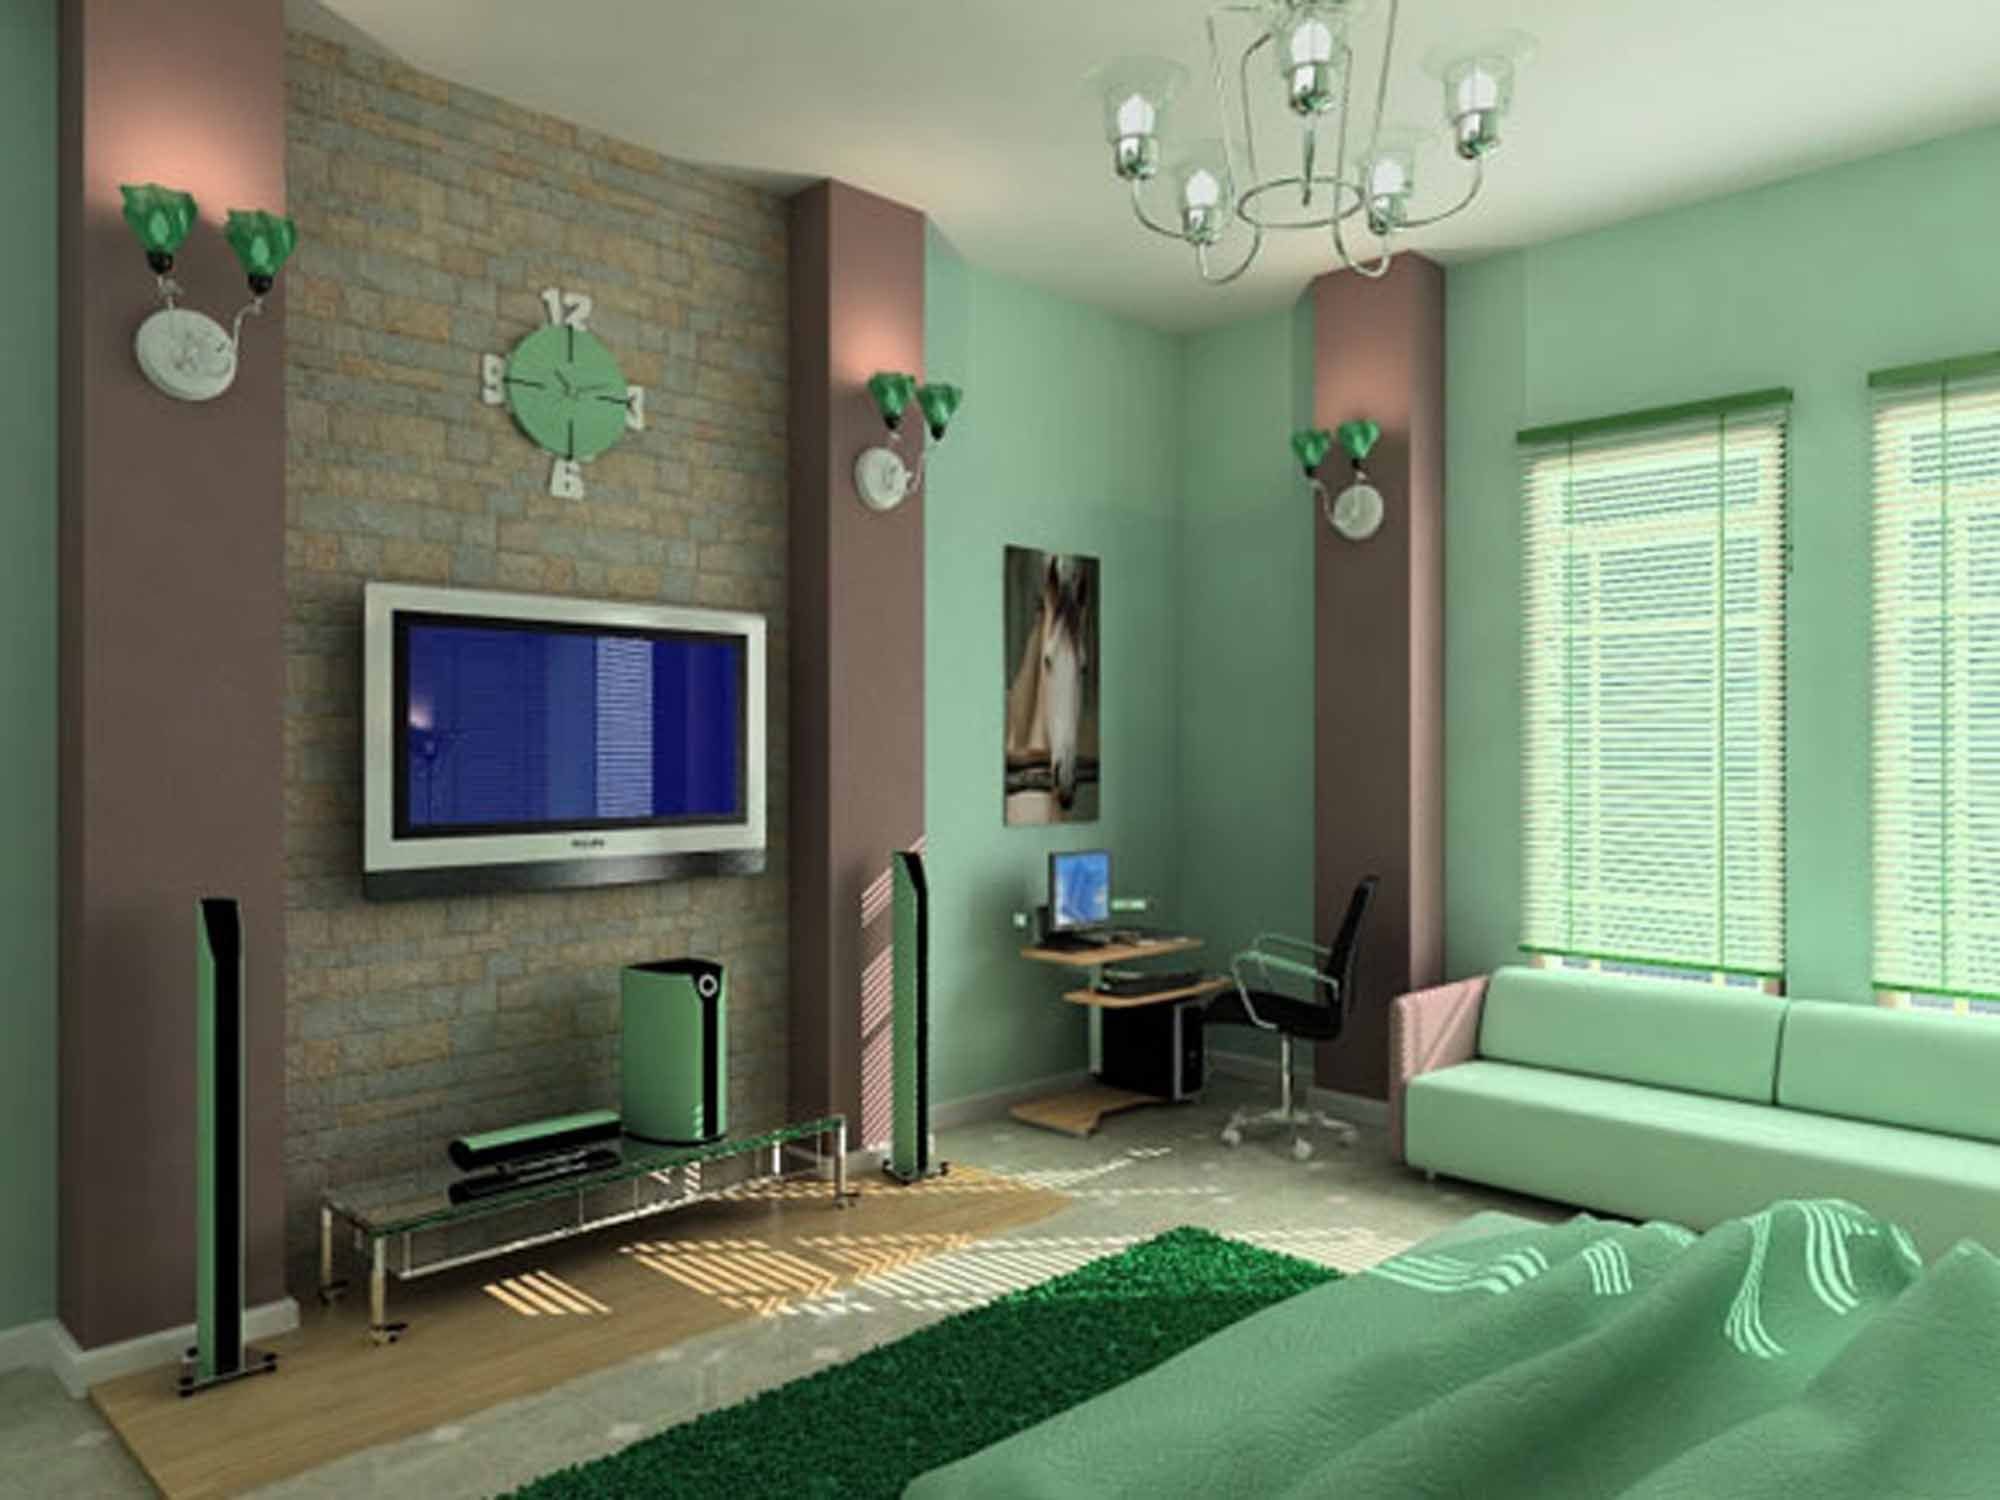 cool as a cucumber master bedroom colors bedroom colors on interior house color ideas id=53975